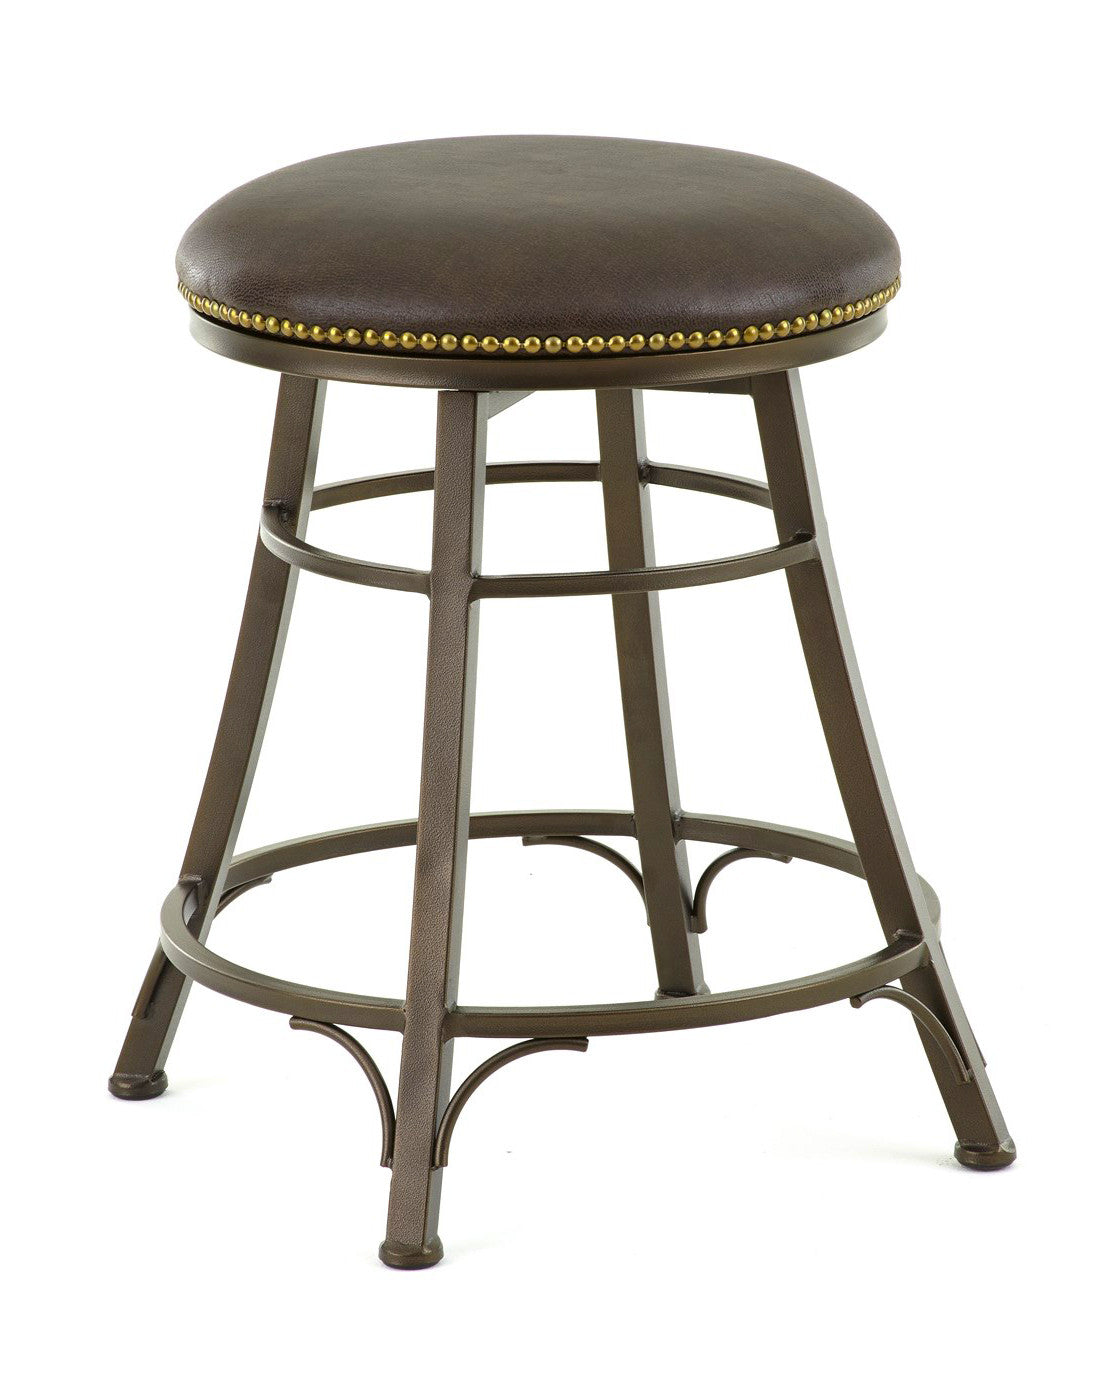 Brilliant Bali Backless Swivel Counter Height Barstool Steve Silver Company Squirreltailoven Fun Painted Chair Ideas Images Squirreltailovenorg